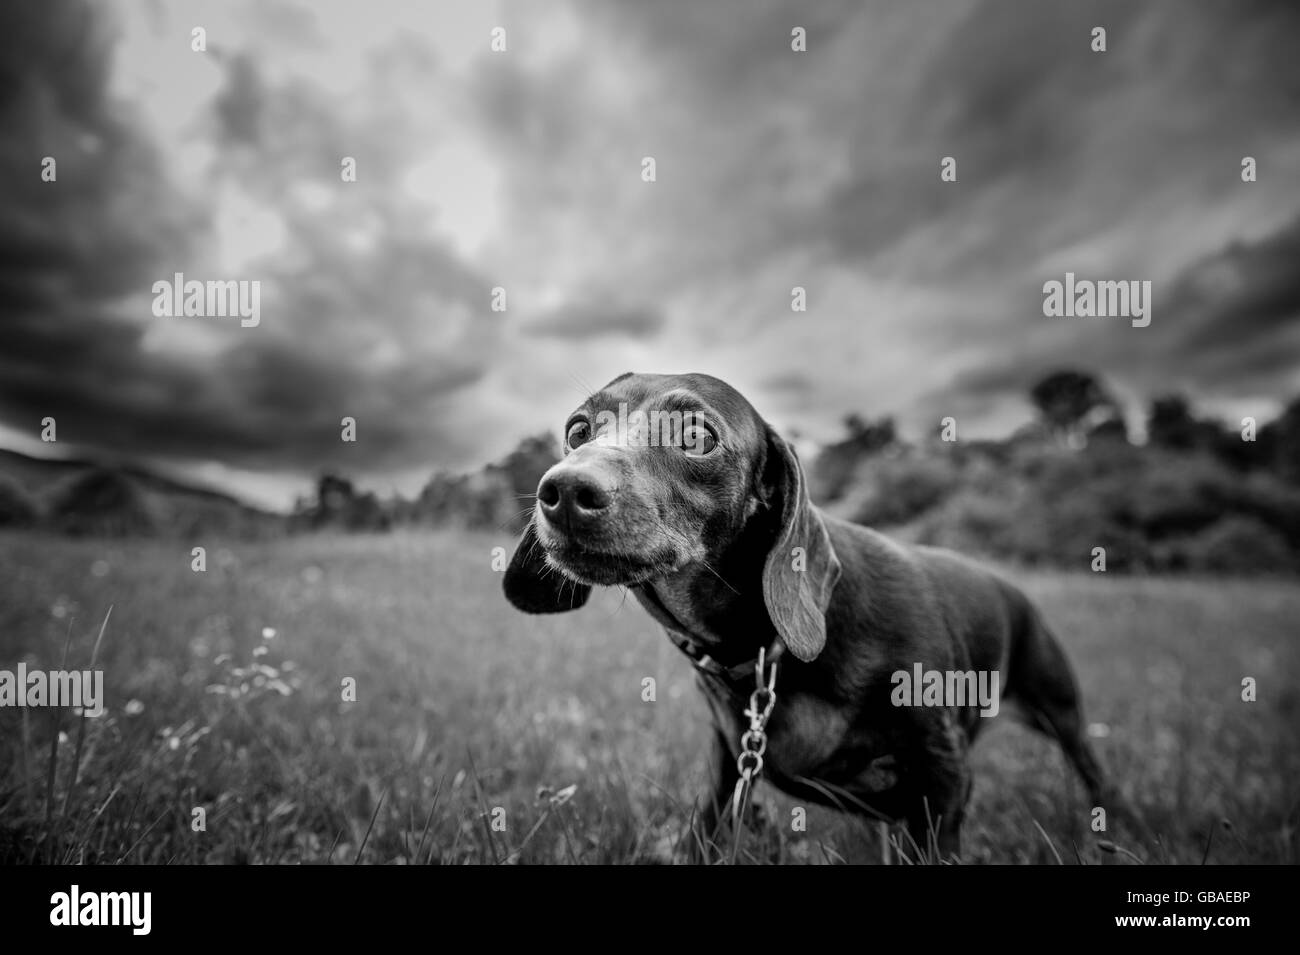 purebred dog for a walk in the park looking at the camera - Stock Image